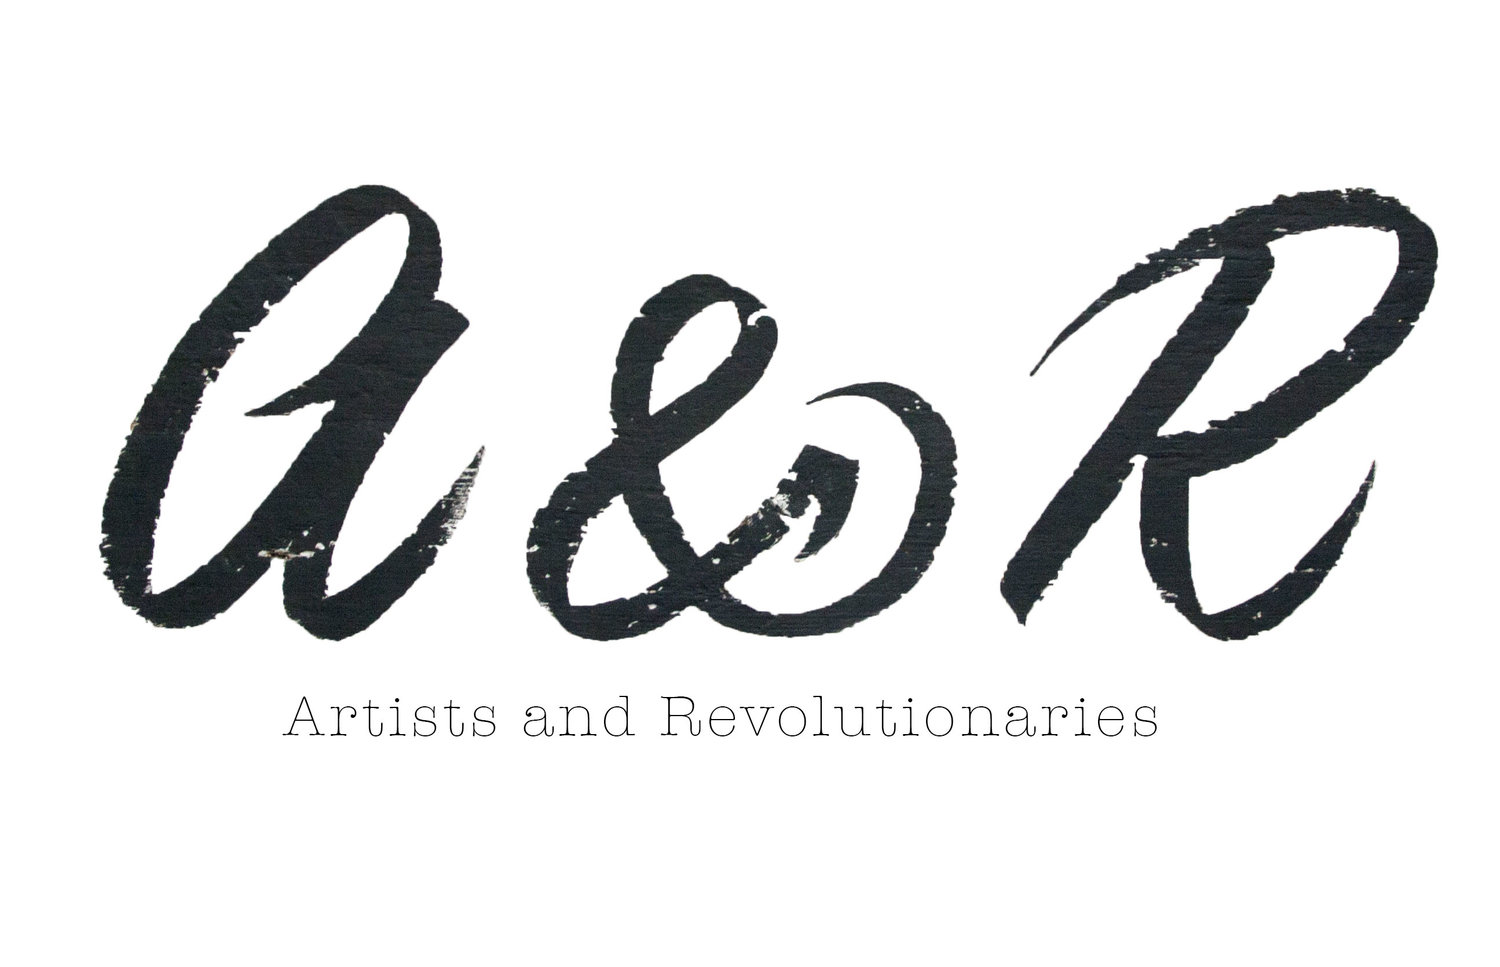 Artists & Revolutionaries